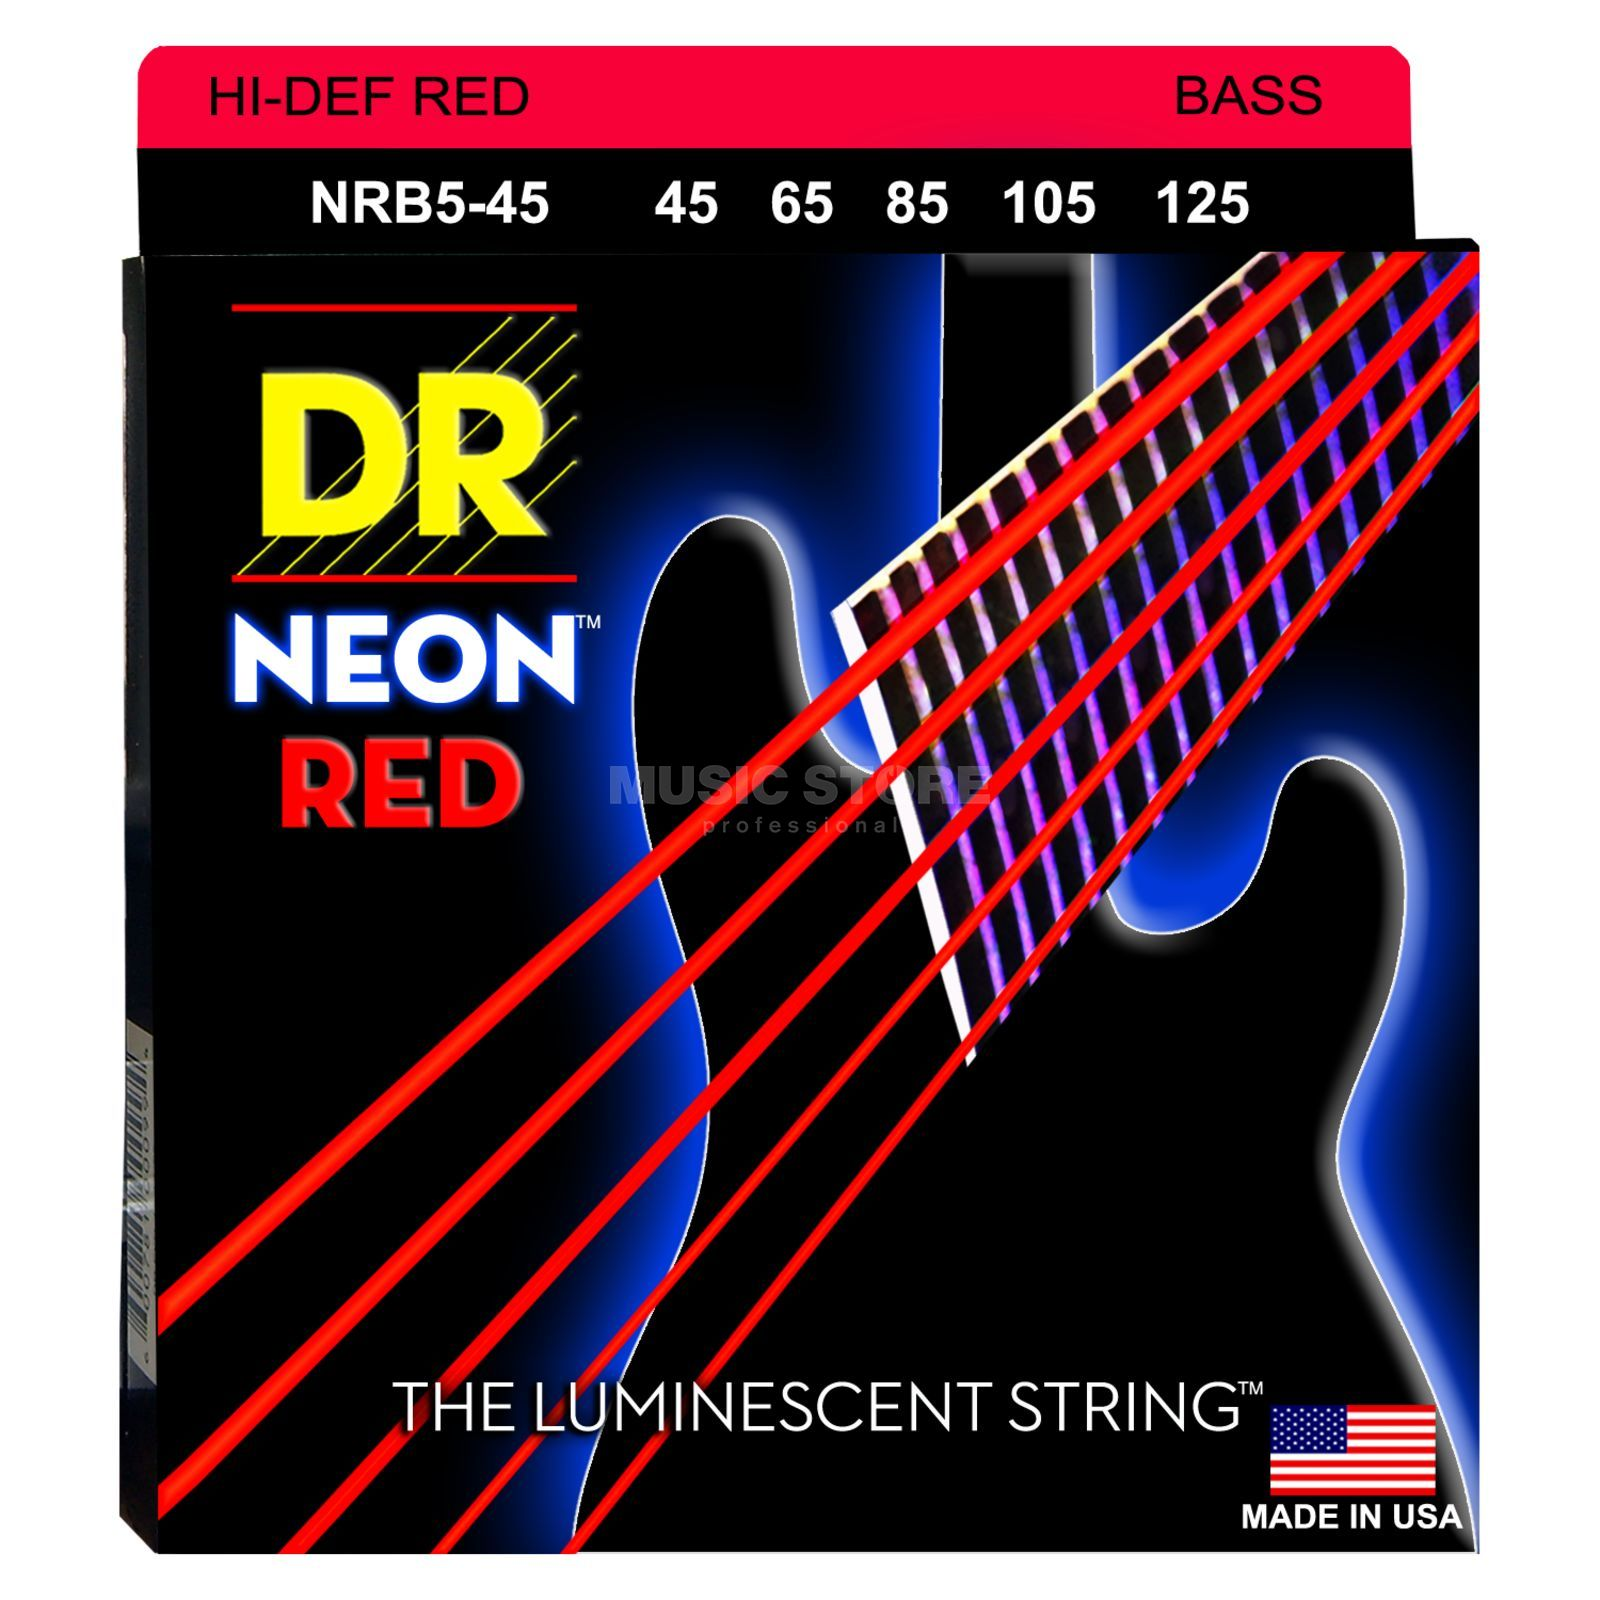 DR 5er bas 45-125 Hi-Def neon rood neon NRB5-45 Productafbeelding